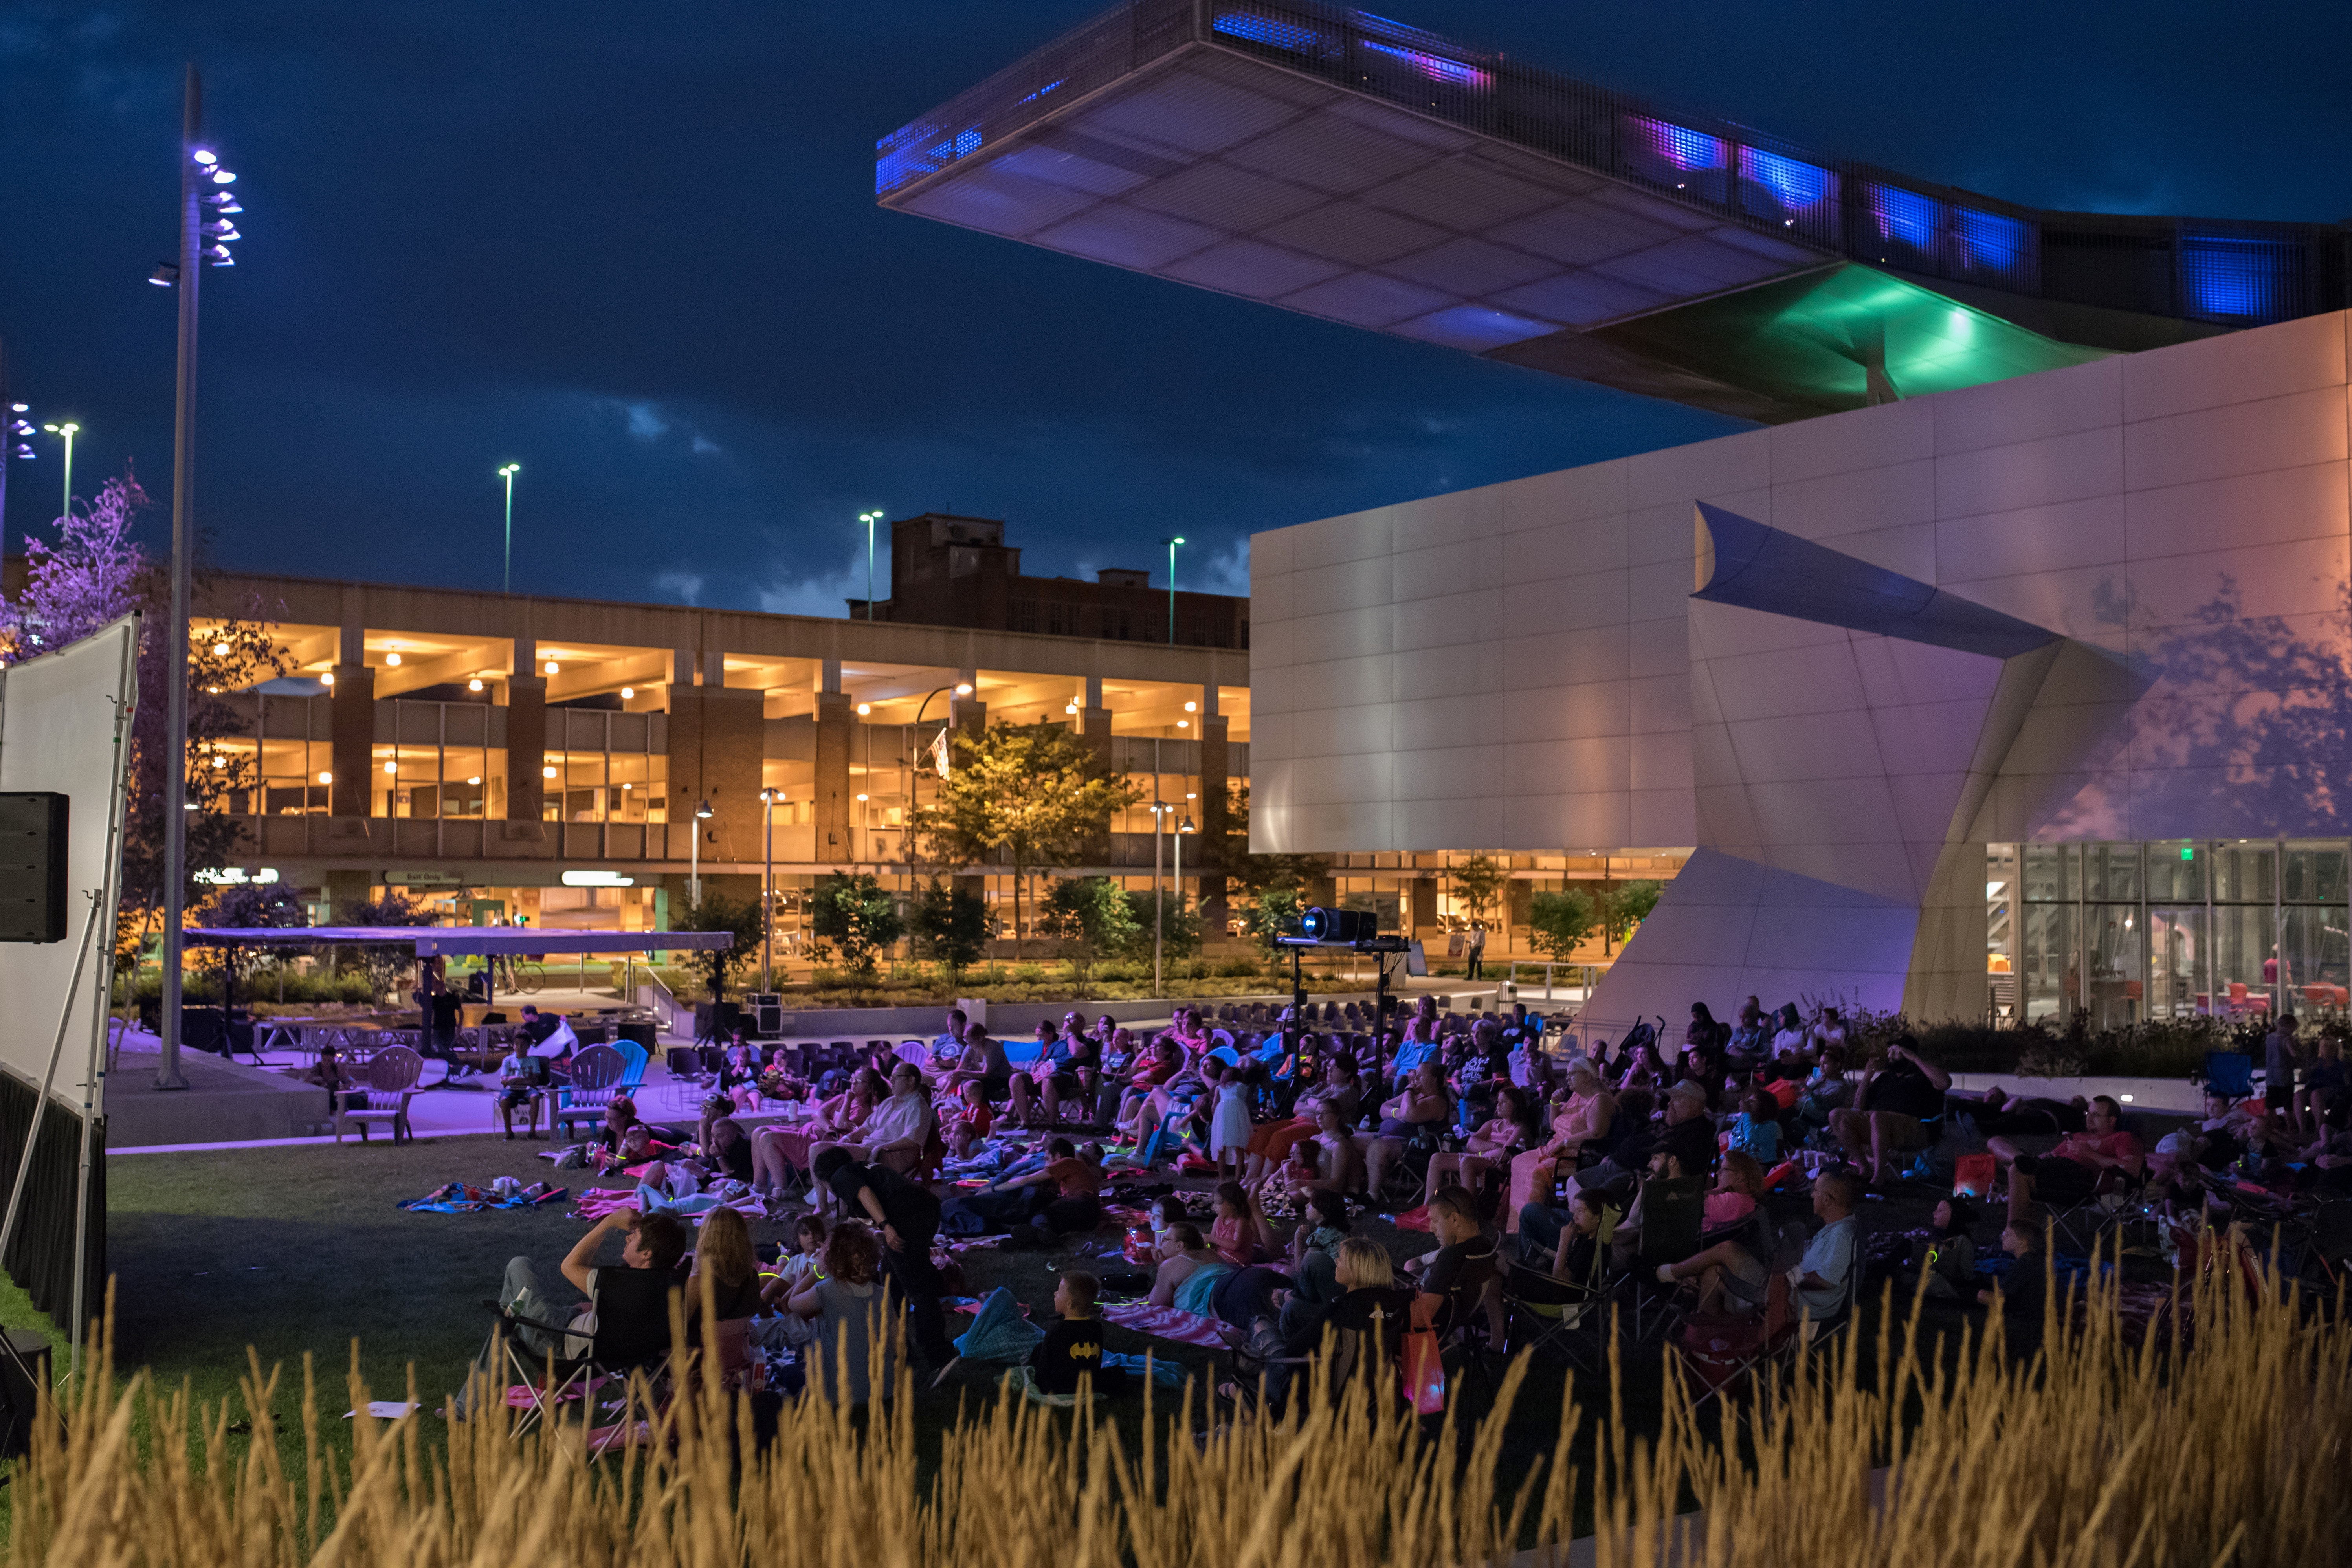 <p><em>LEGO Family Movie Night drew a crowd on a beautiful July 2017 evening at the Akron Art Museum's iconic John S. and James L. Knight Building, the first North American building designed by award-winning architecture firm Coop Himmelb(l)au. Photo: Chris Rutan Photography</em></p>